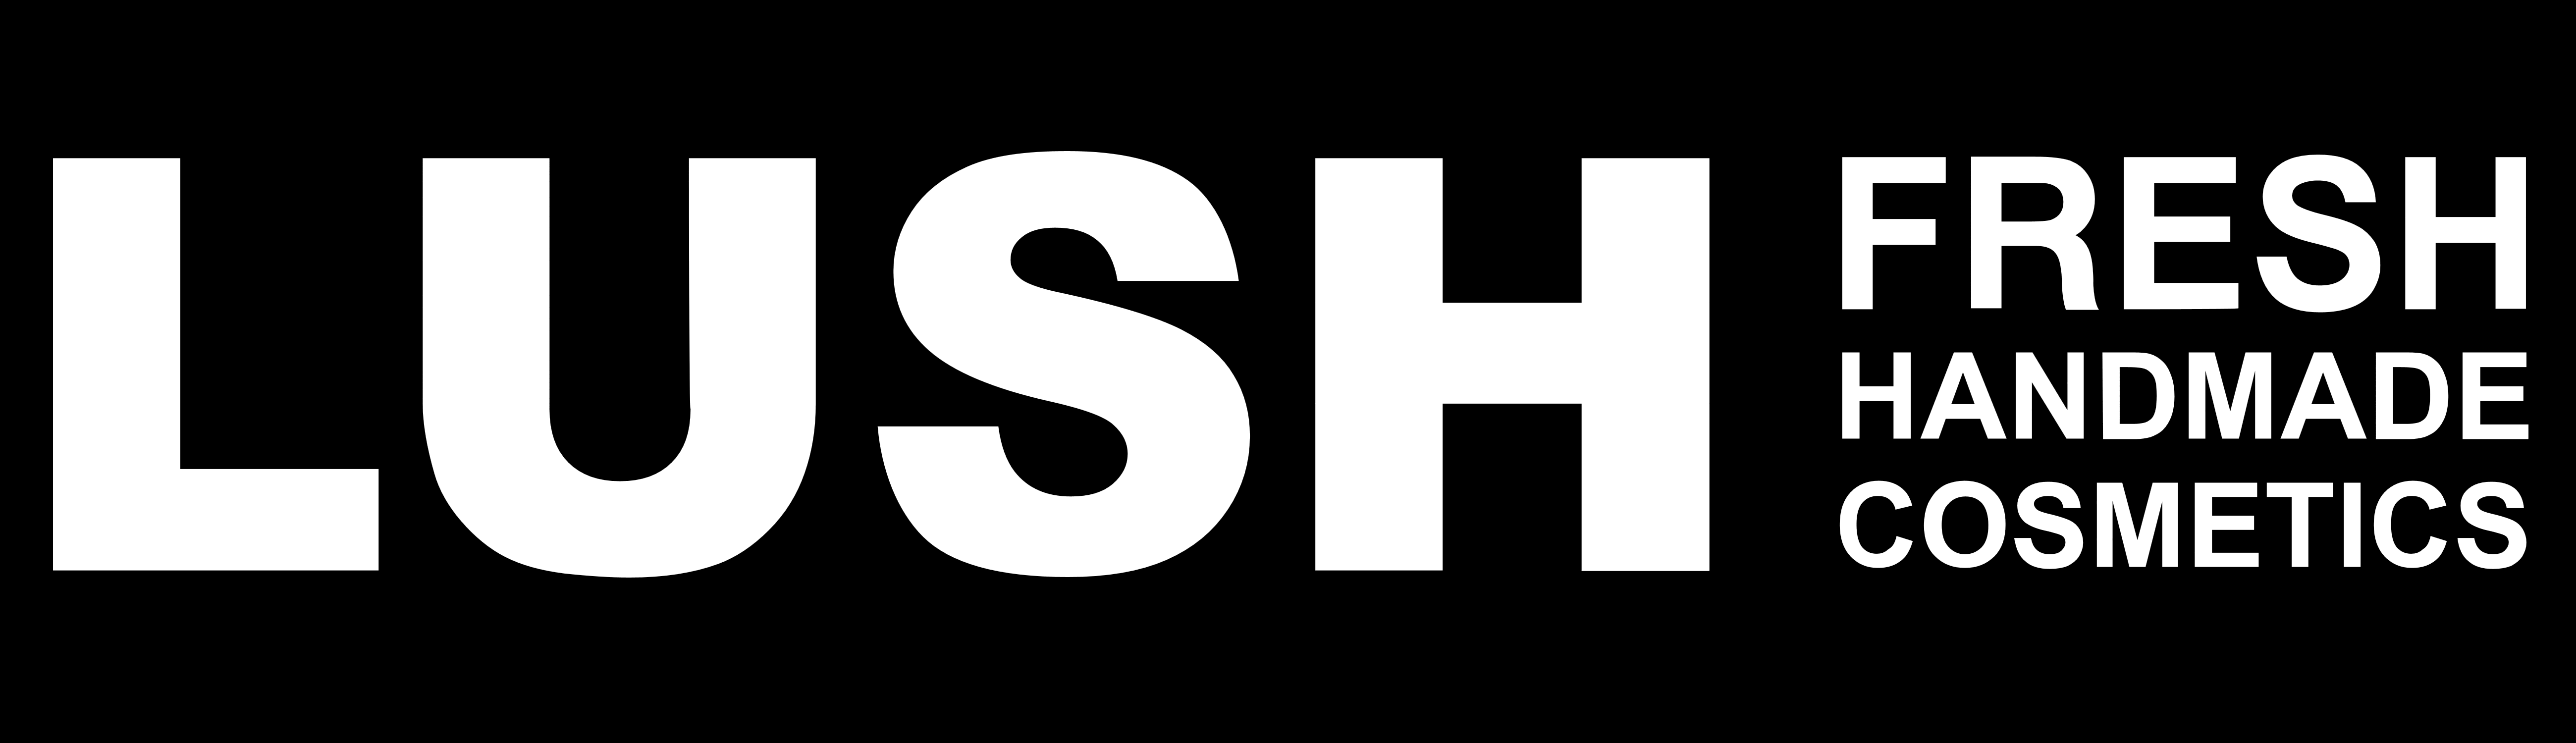 Lush – Logos Download